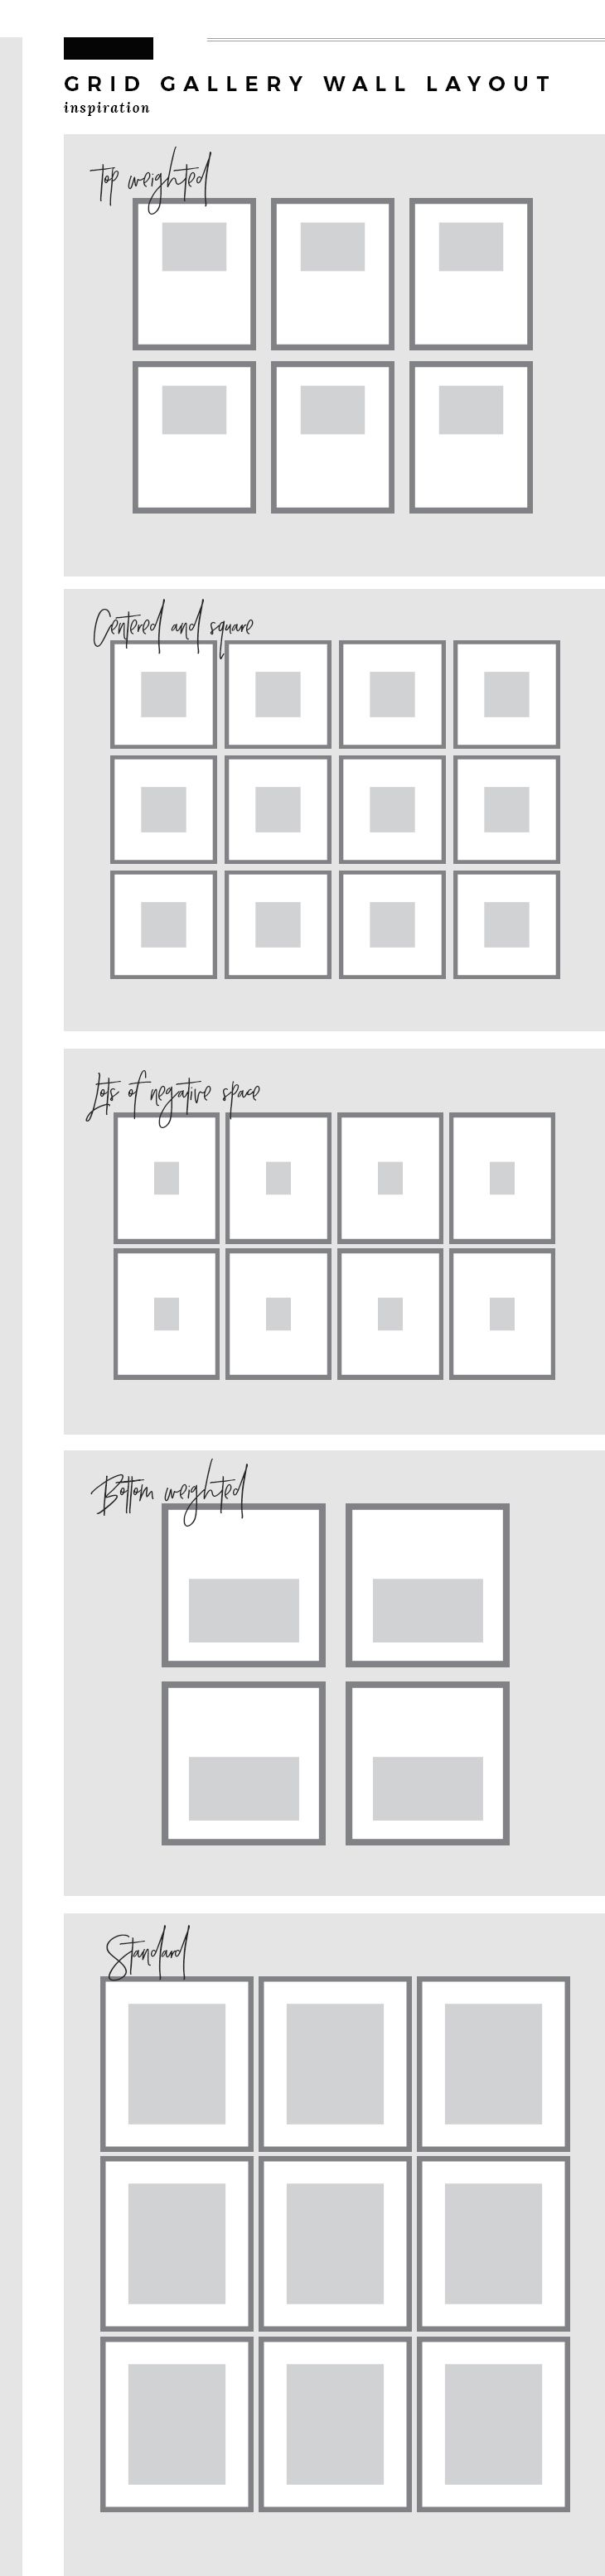 Your Guide to Creating the Perfect Grid Gallery Wall | Gallery wall ...